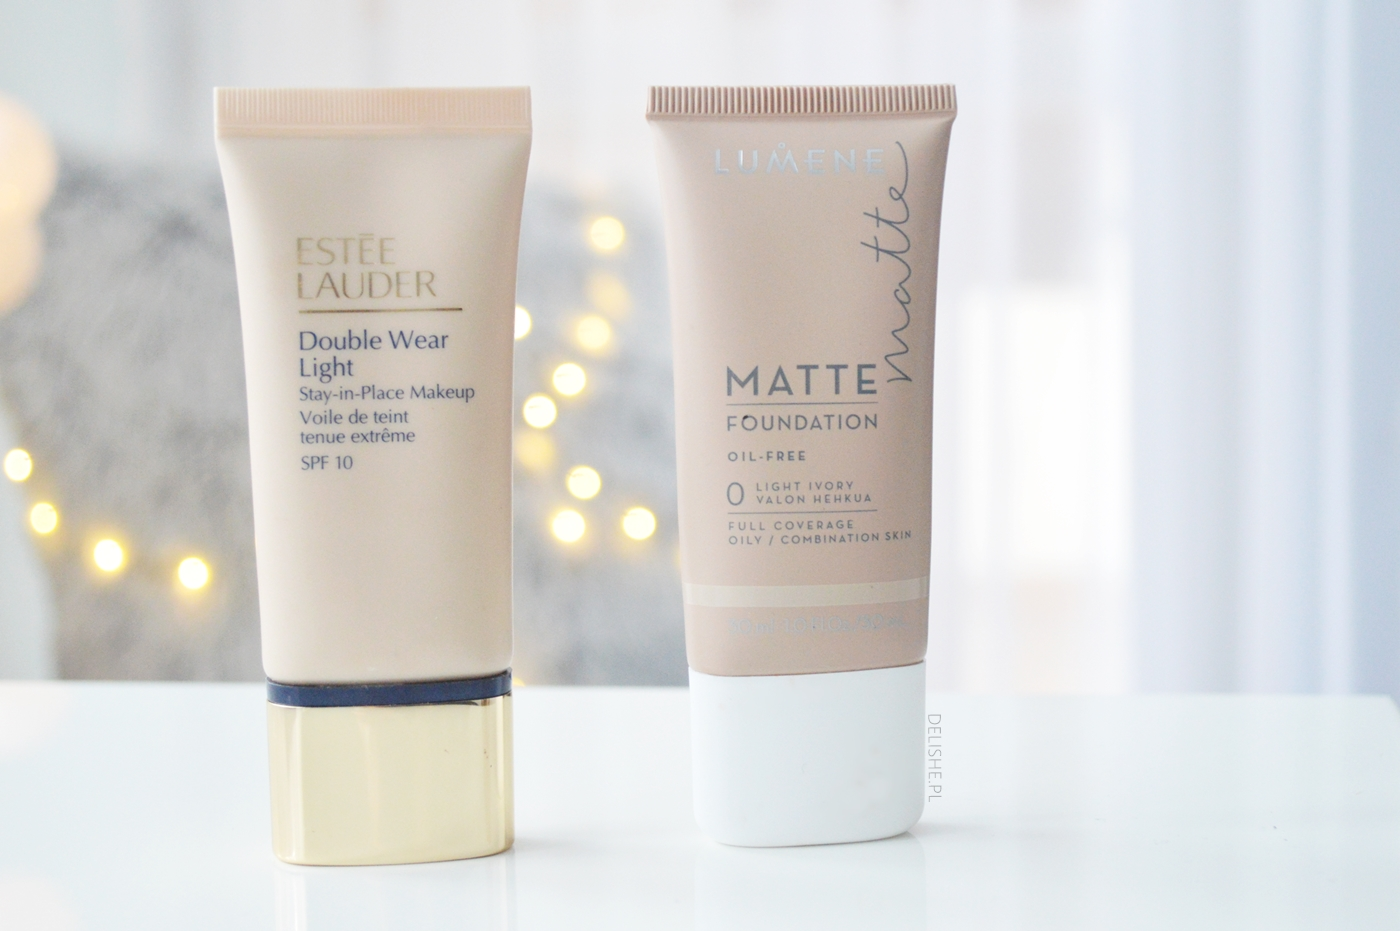 estee lauder double wear light lumene matte